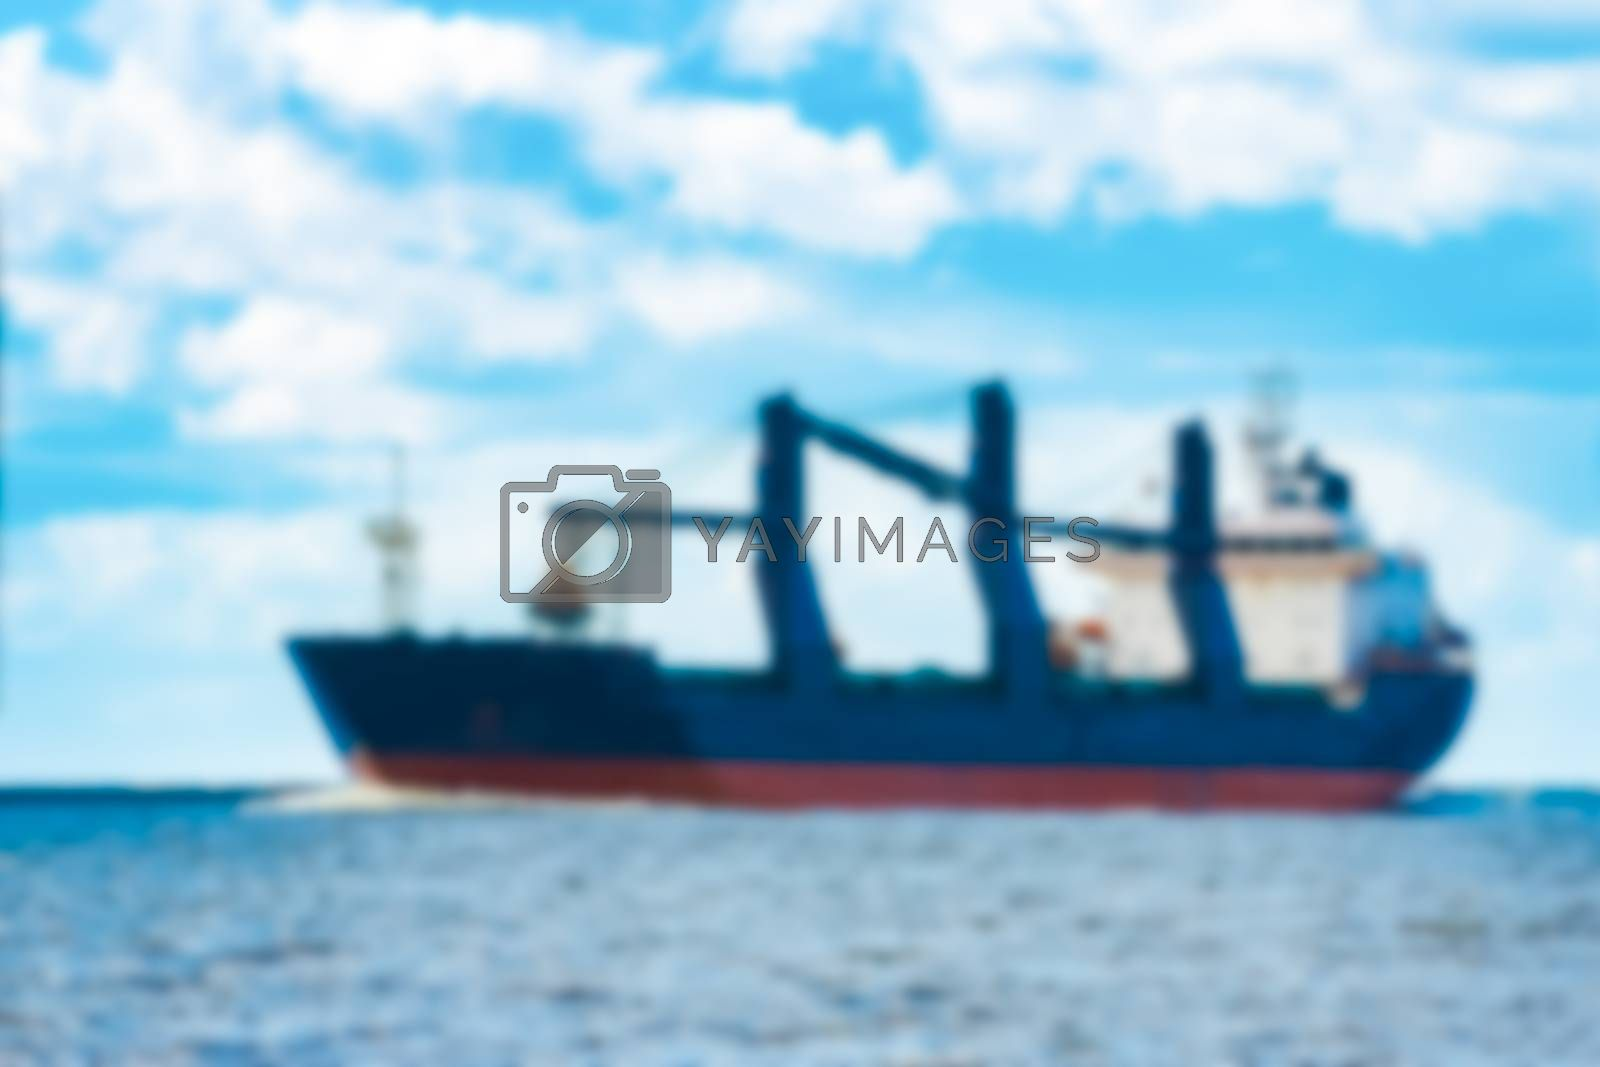 Blue cargo ship - blurred image by New SIGHT Photography